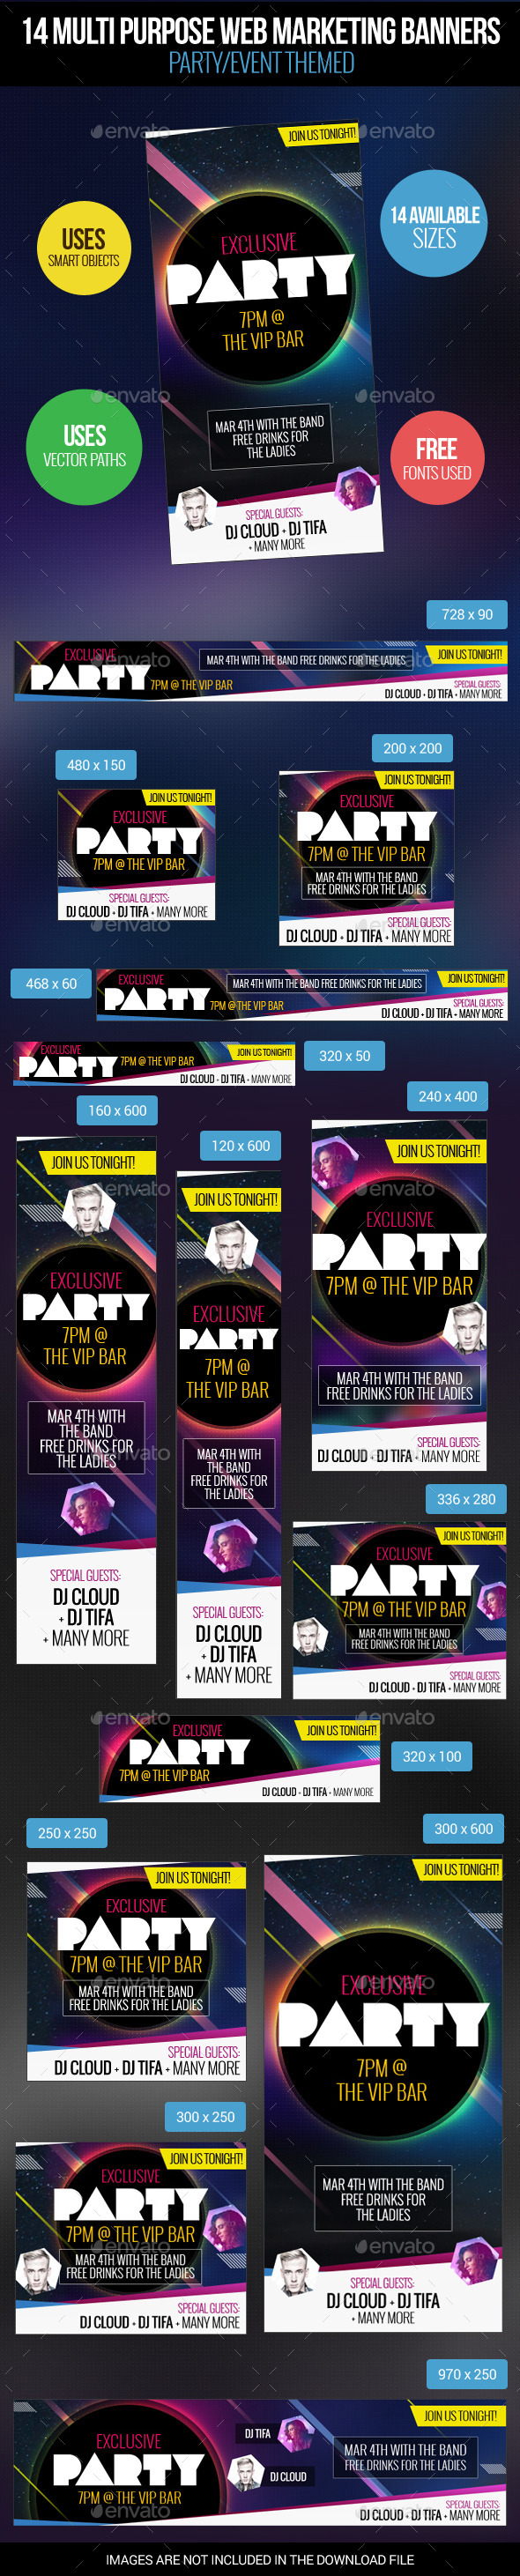 14 Party Themed Web Marketing Banners - Banners & Ads Web Elements